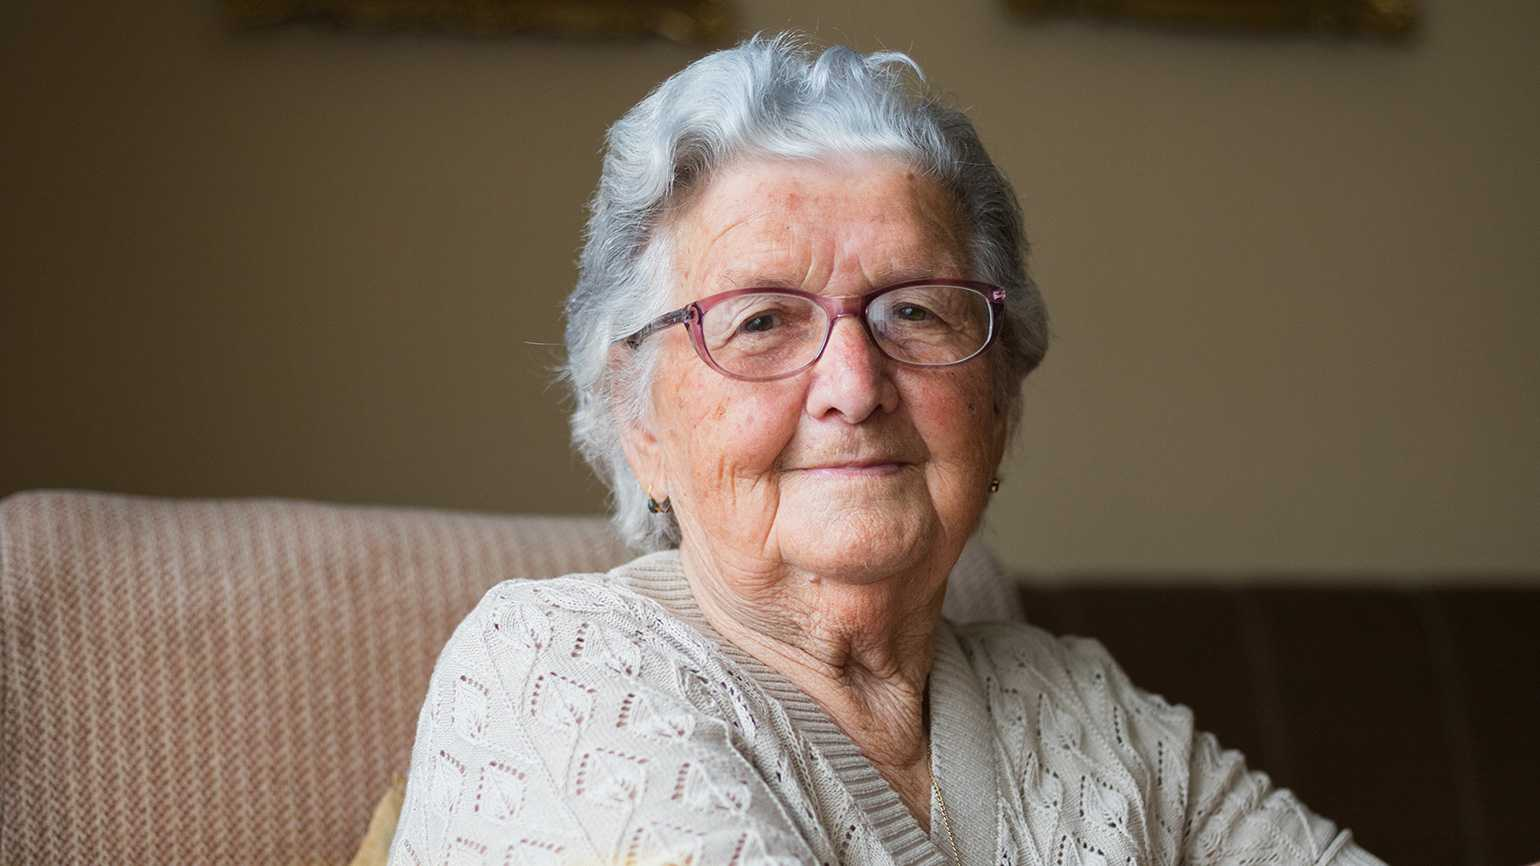 A senior woman; Photo by Dobrila Vignjevic, iStock/Getty Images Plus